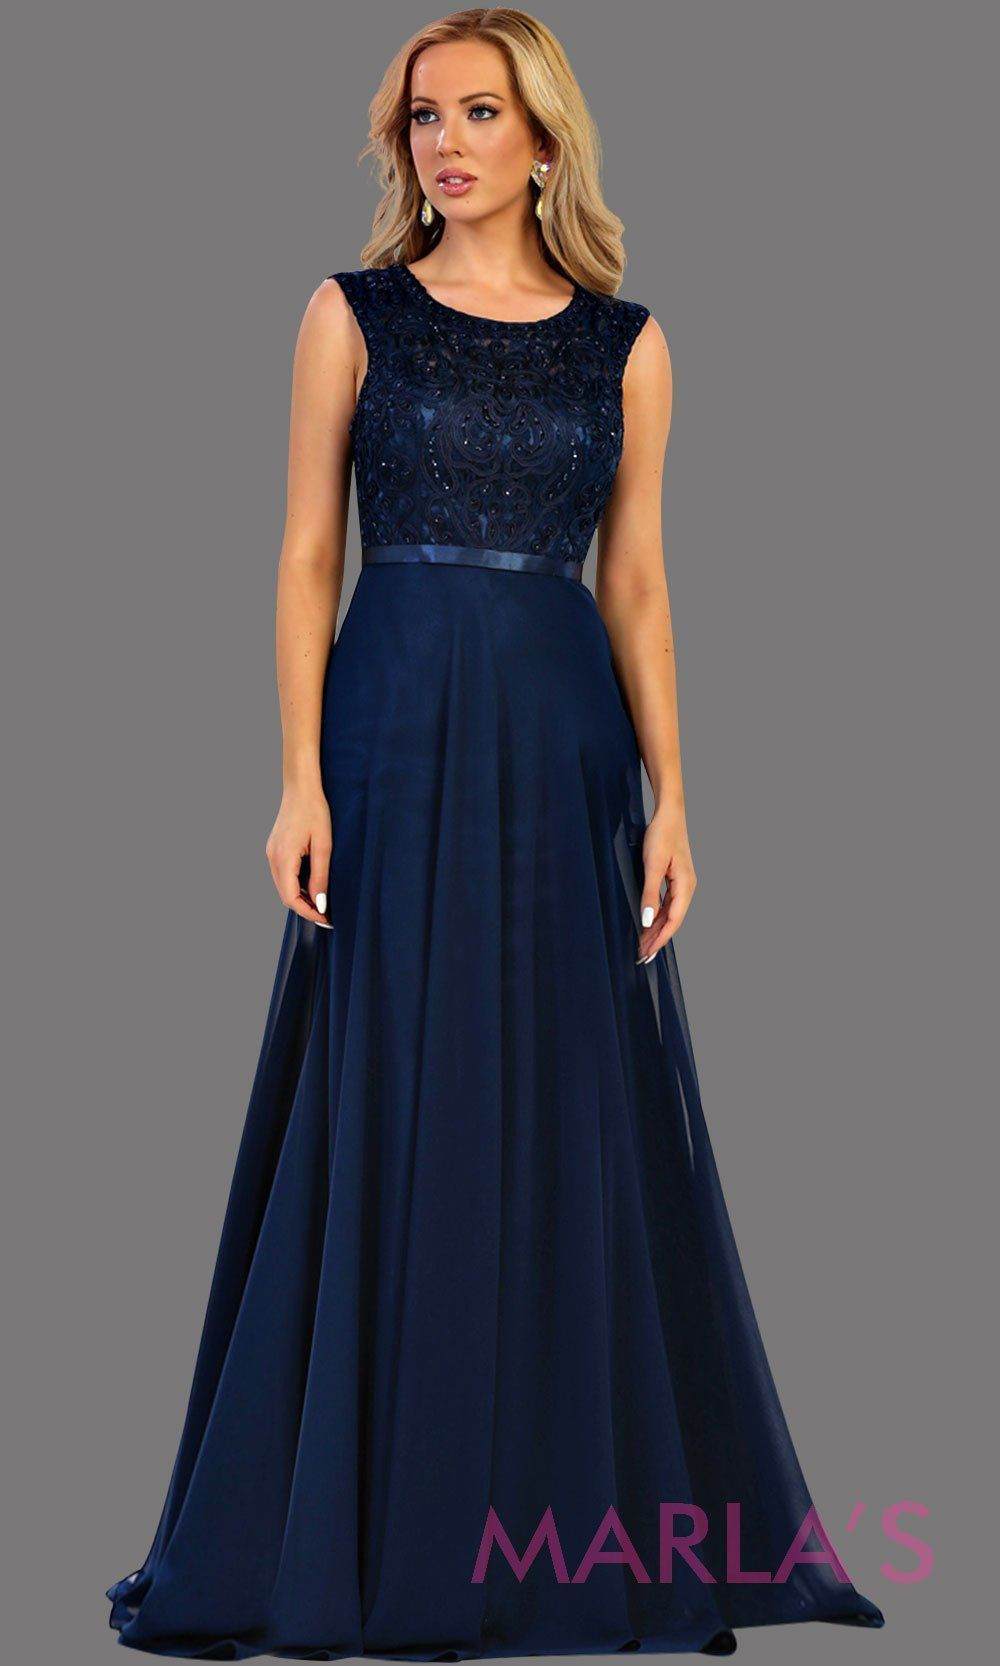 065fe3f9584 Long flowy dark blue high neck lace party dress. Perfect for modest navy  blue prom